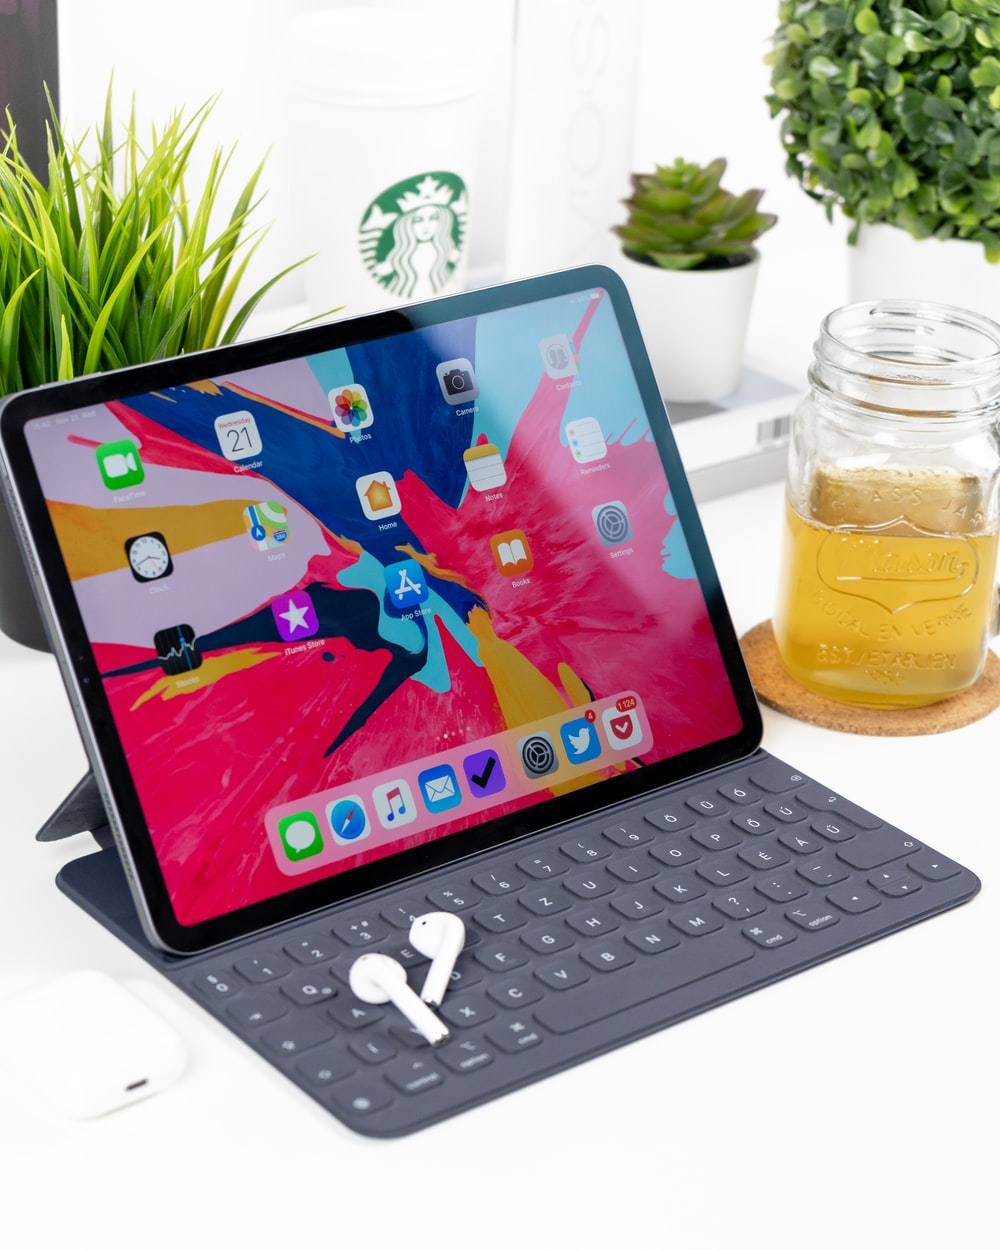 turned-on black tablet computer with keyboard